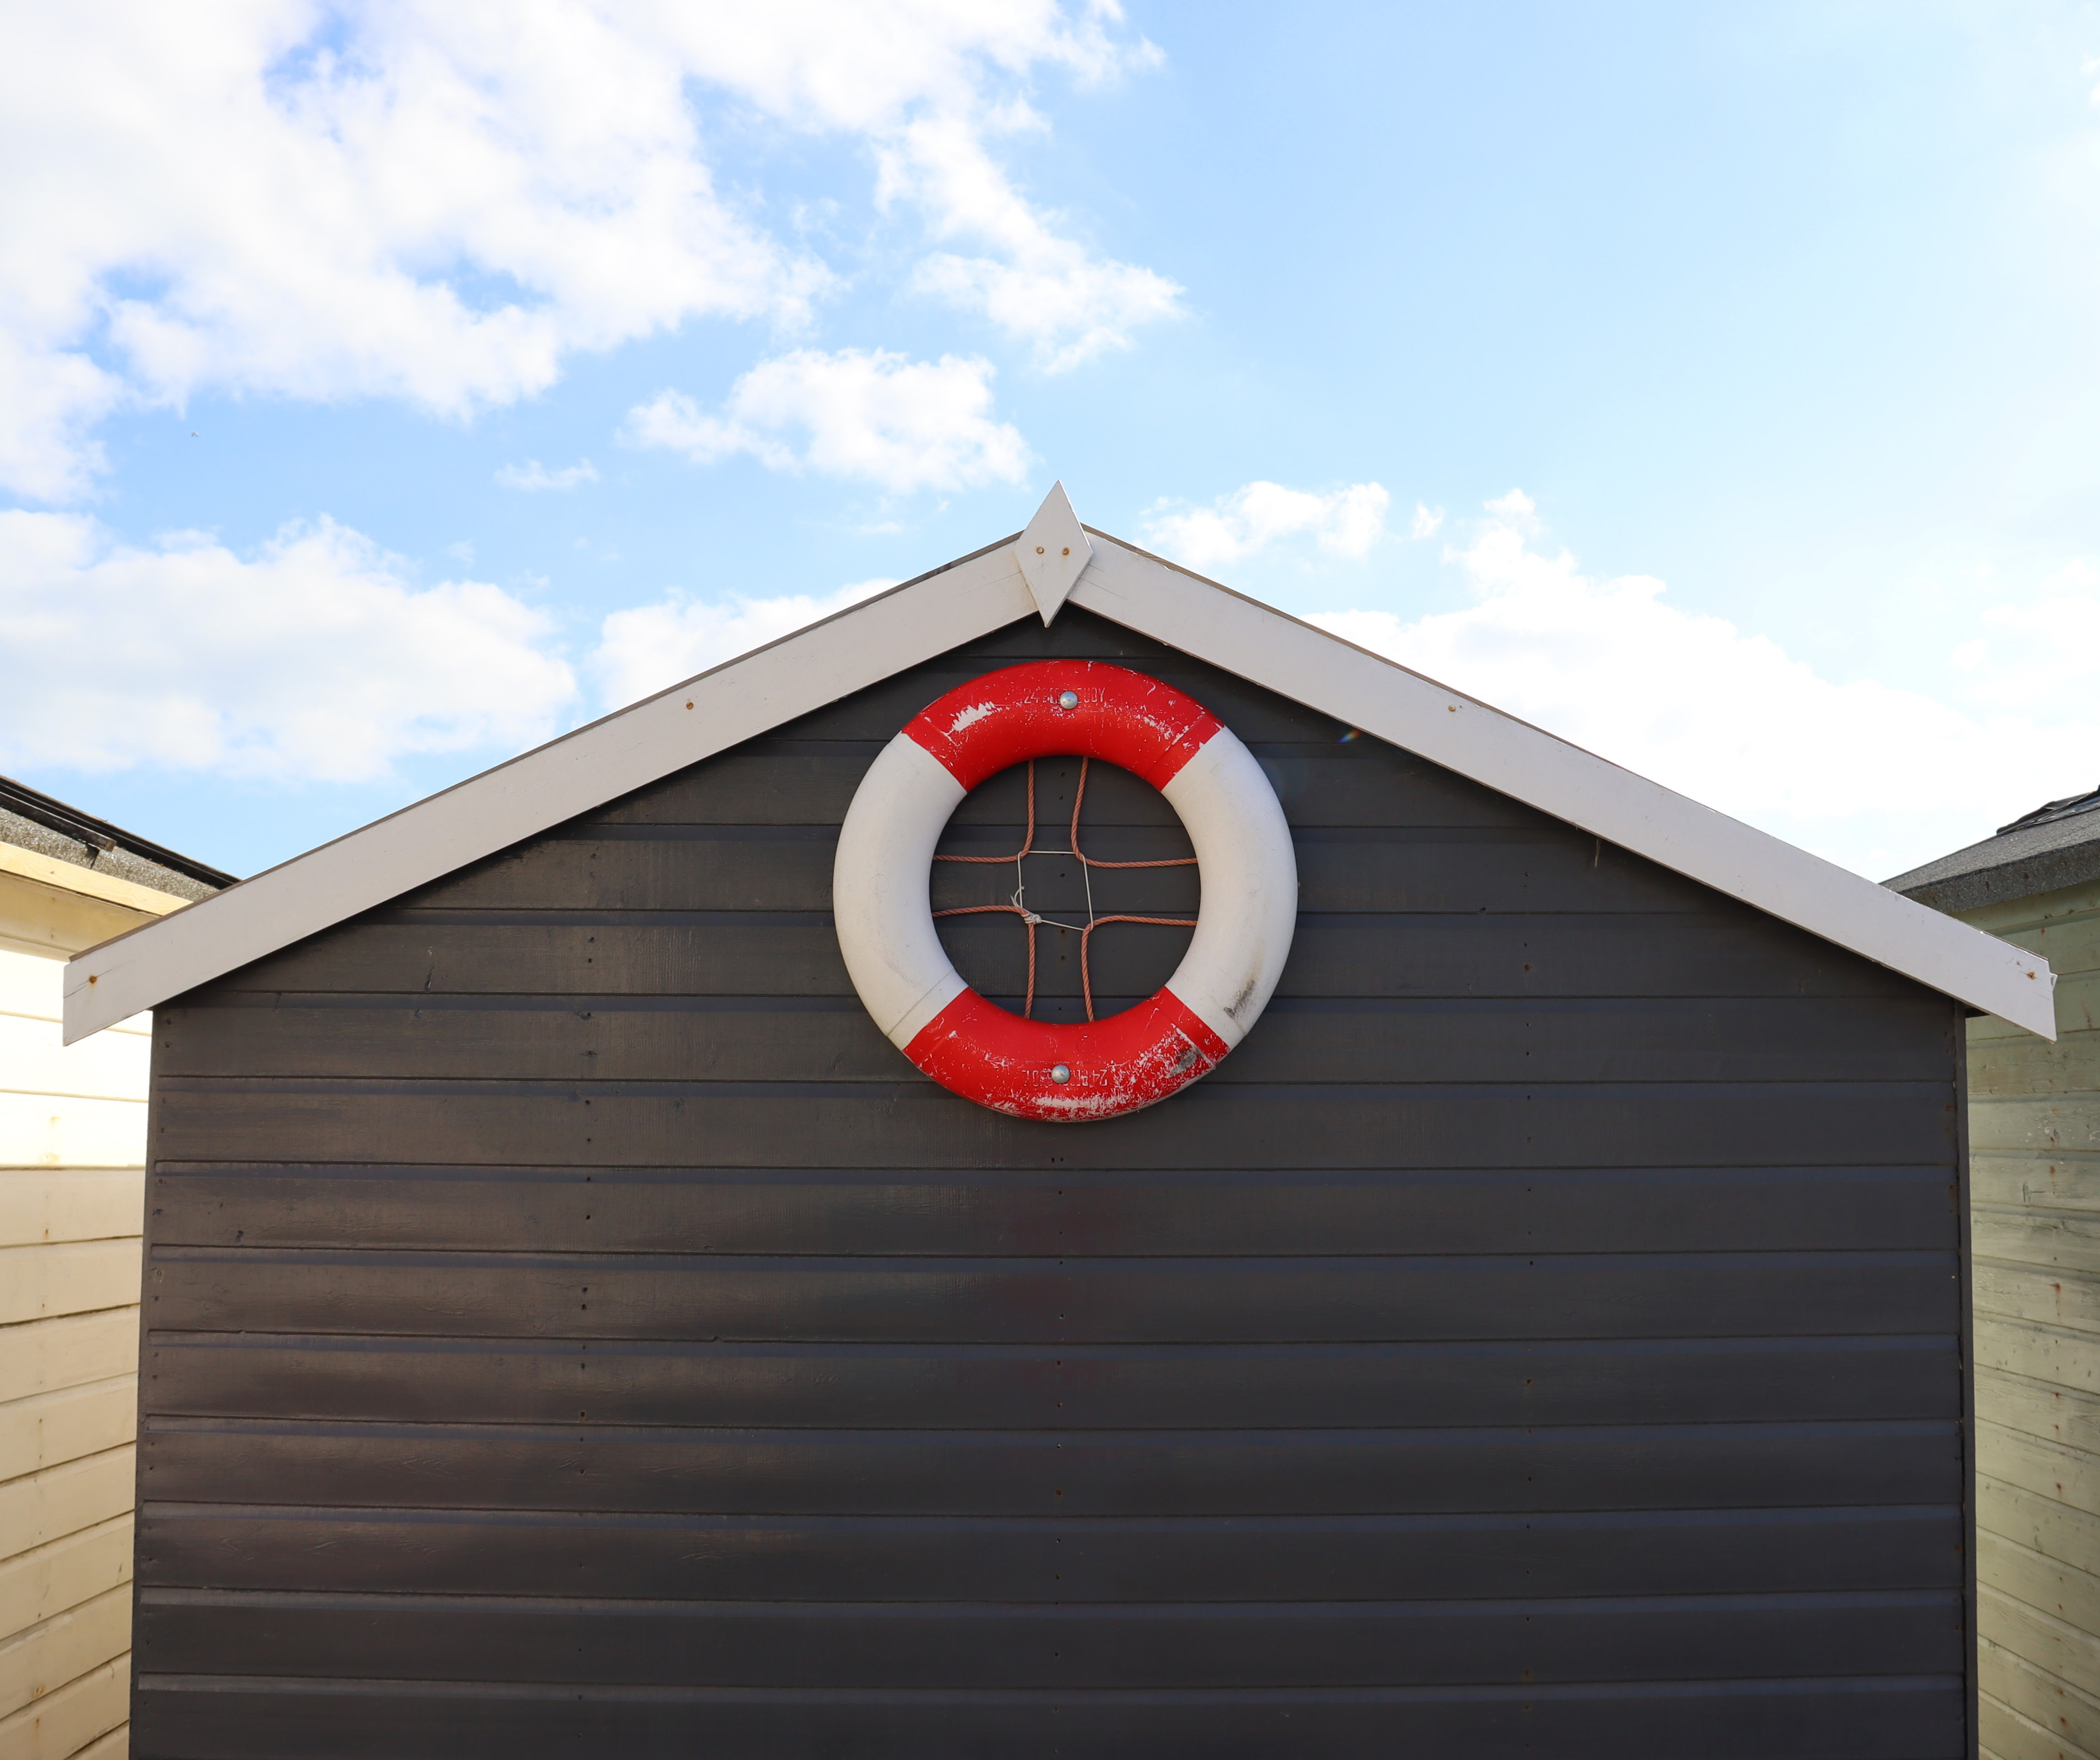 A grey beach hut with a white roof that has a red and white life ring attached to it.